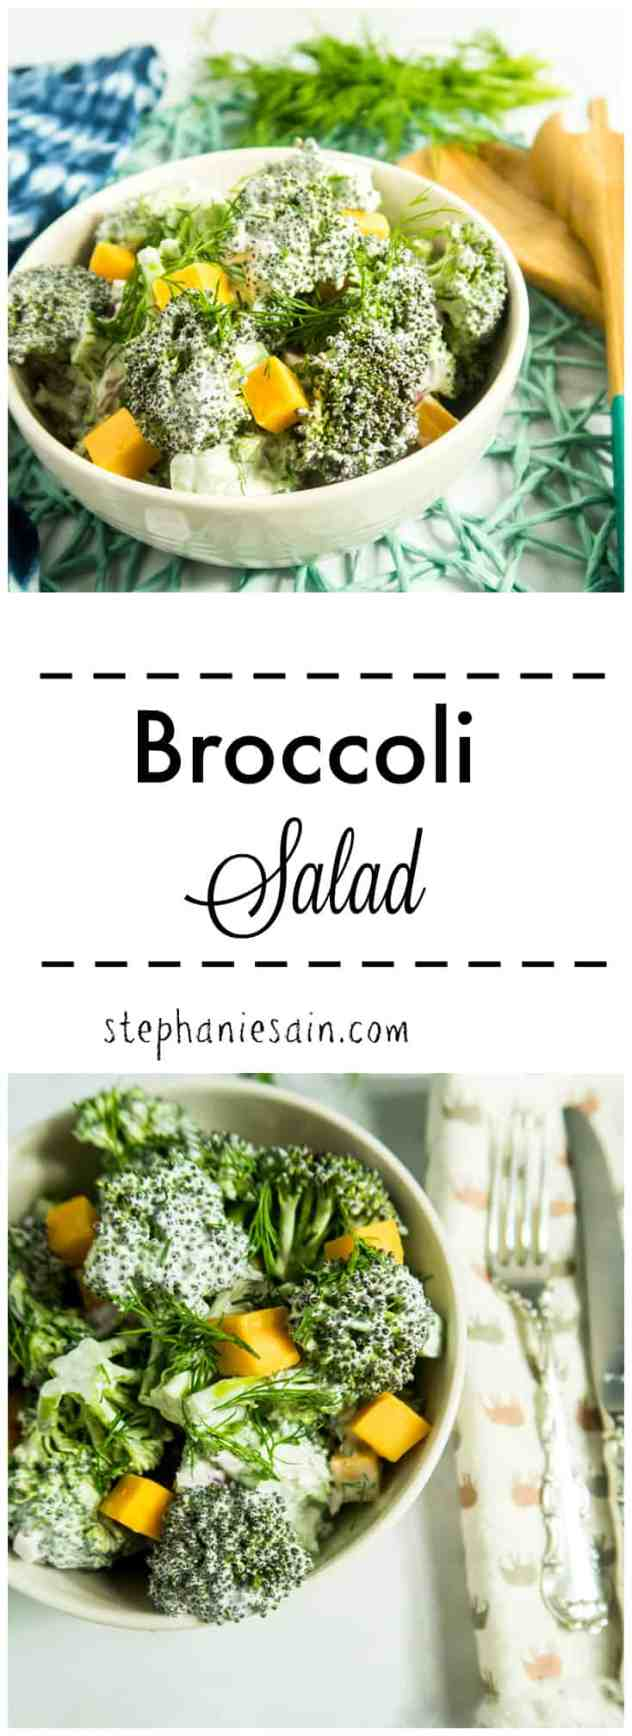 Broccoli Salad is the perfect make ahead salad. Great for cookouts, family gatherings or even goes great as a side for dinner. Vegetarian and Gluten Free.